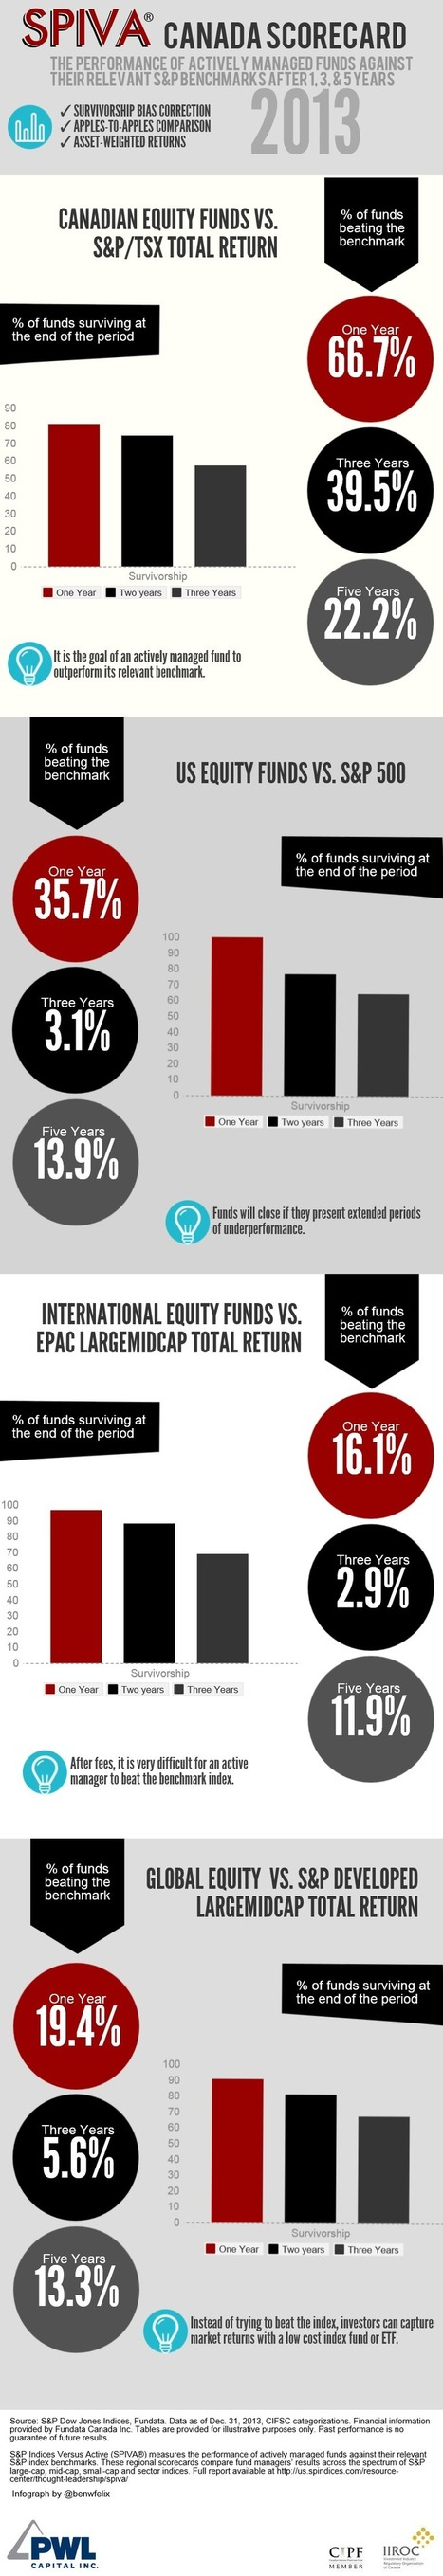 SPIVA® Canada Scorecard 2013 (Infographic) | Investing | Scoop.it